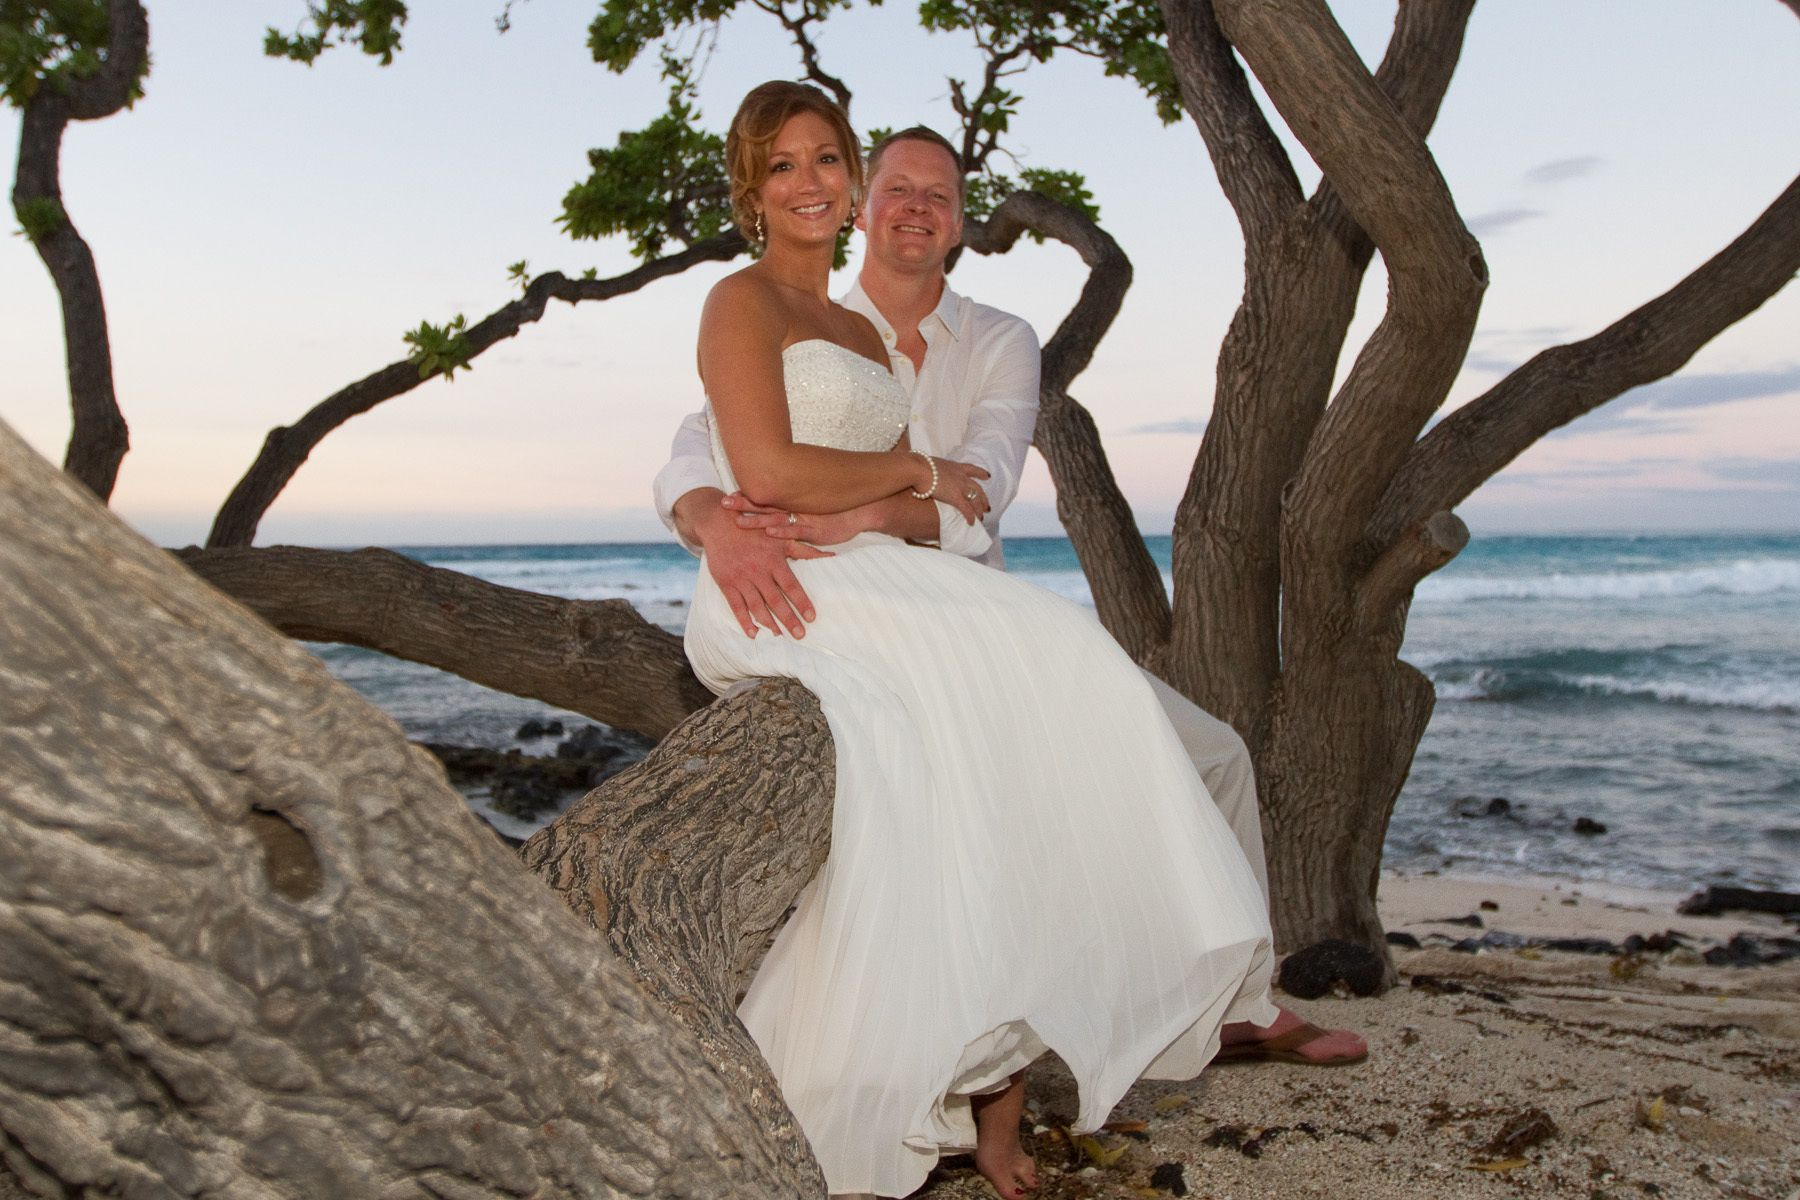 1kailua_kona__honolulu__hawaii__wedding__photographer_1031